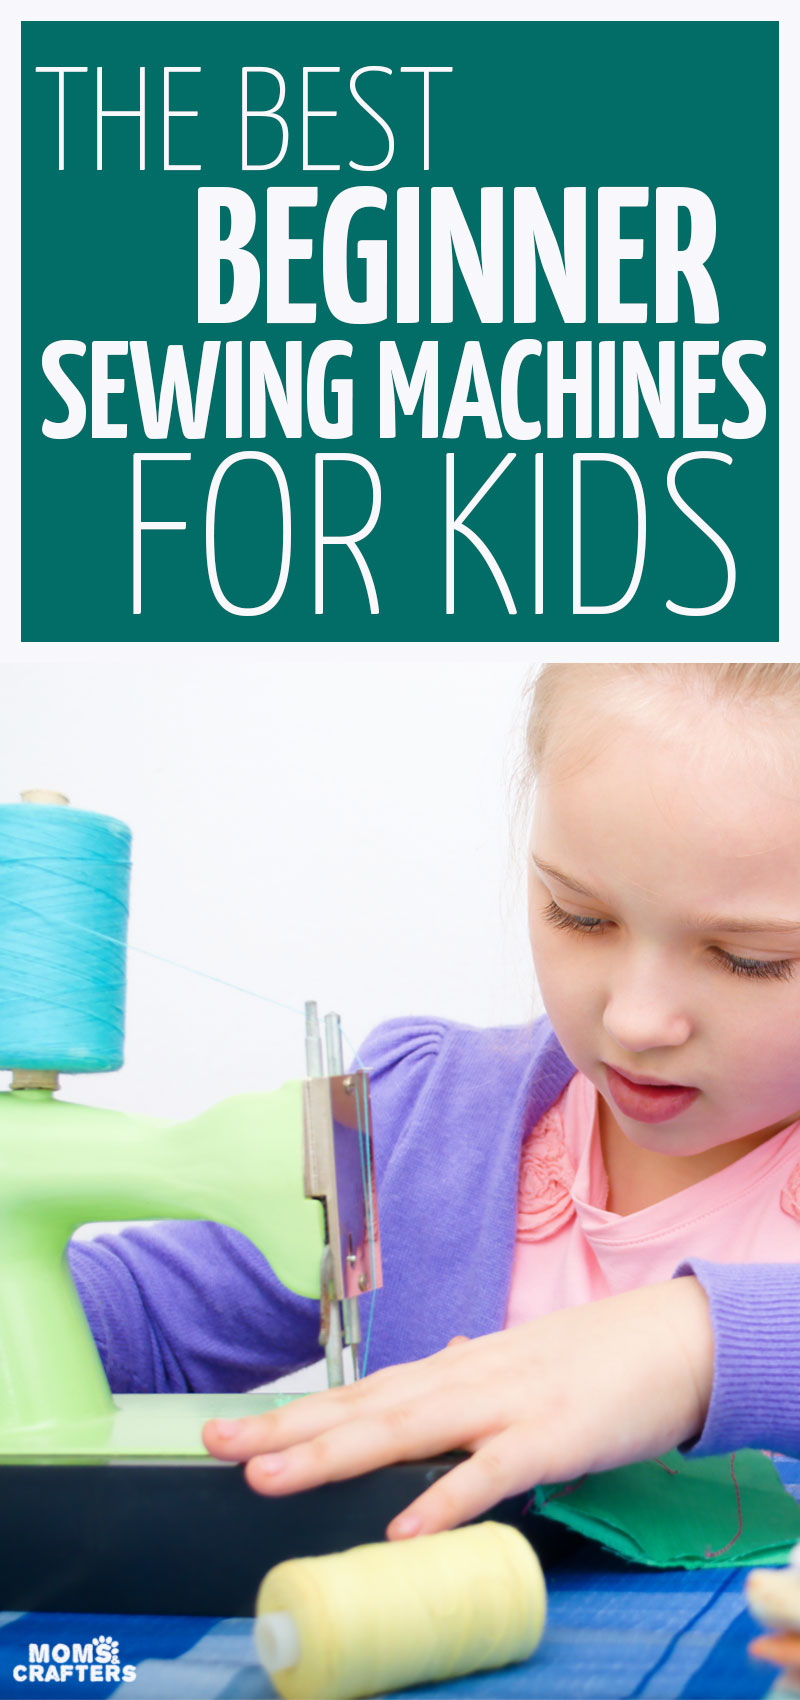 Kids can learn how to sew pretty young - find out what the best sewing machine for kids including tweens, teens, and children as young as 6! These sewing machines and tips for teaching kids how to sew are a fun new life skill for kids to learn.